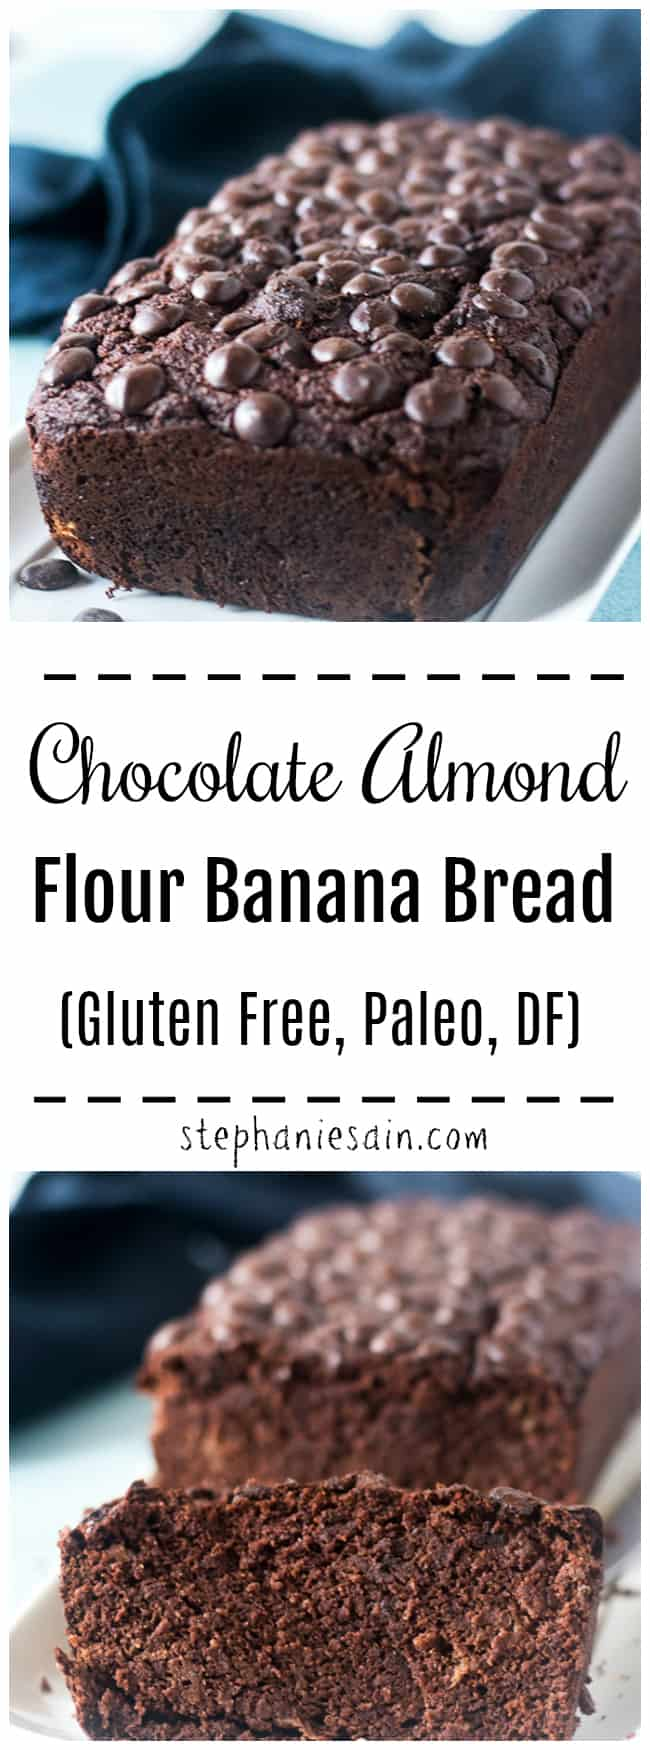 This Chocolate Almond Flour Banana Bread is moist delicious and easy to prepare in one bowl. Great for a healthy breakfast or a quick snack. Gluten Free, Paleo, DF, and has no added Refined sugars